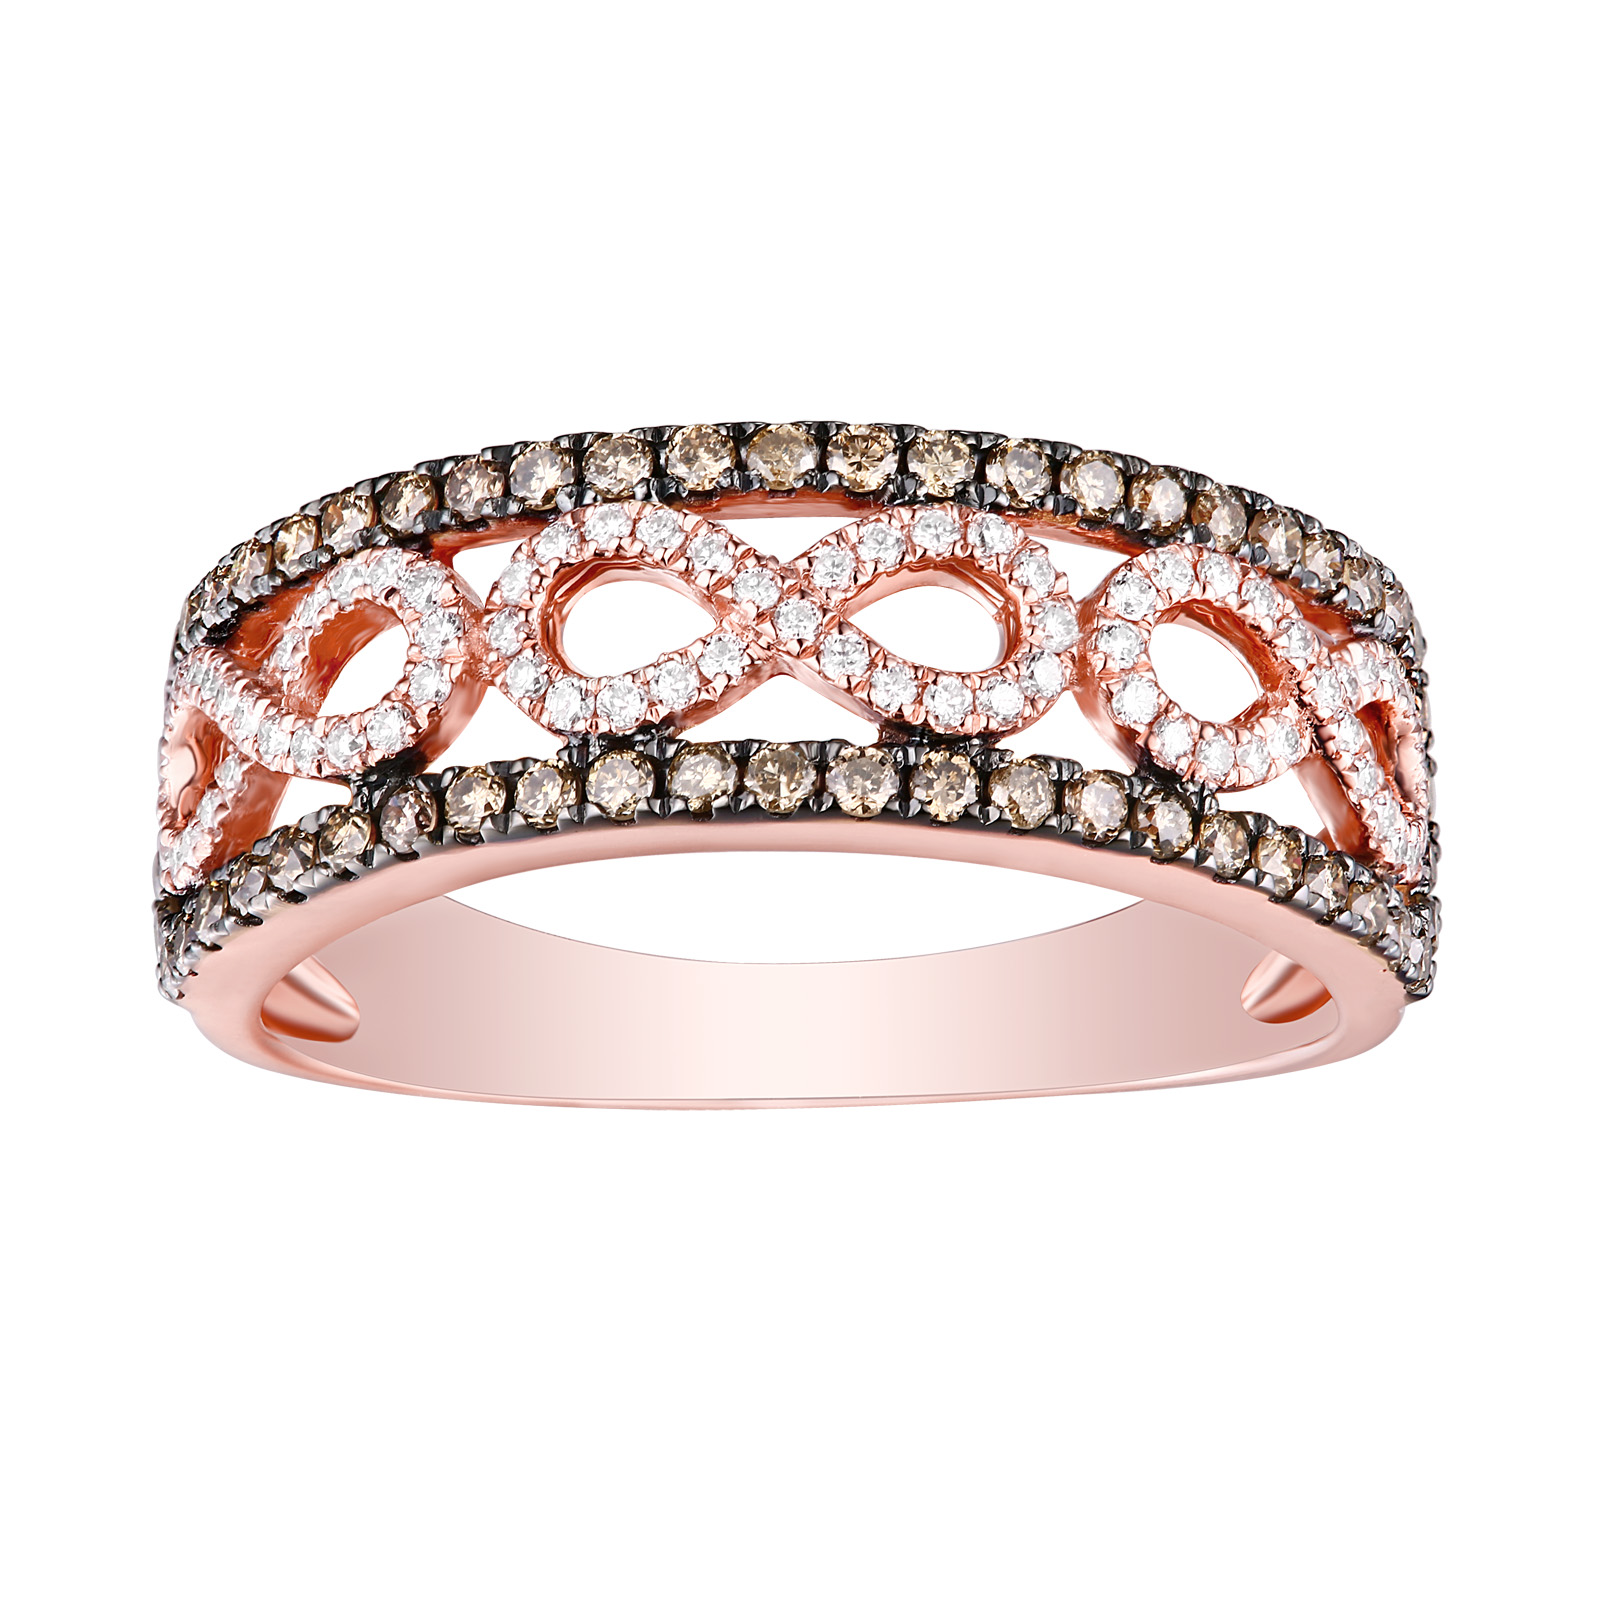 R26208WBR- 14K Rose Gold Diamond Ring, 0.56 TCW